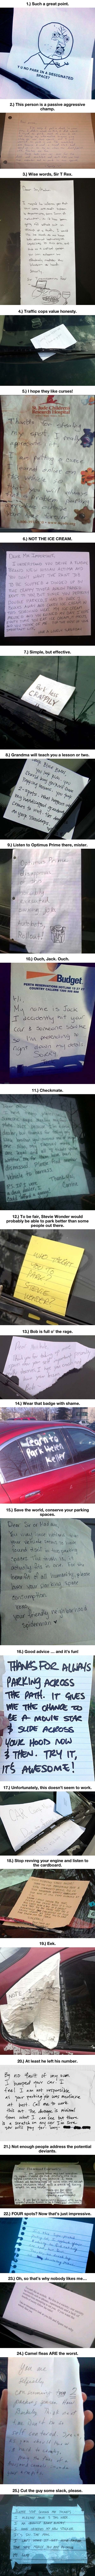 Angry letters on windshields